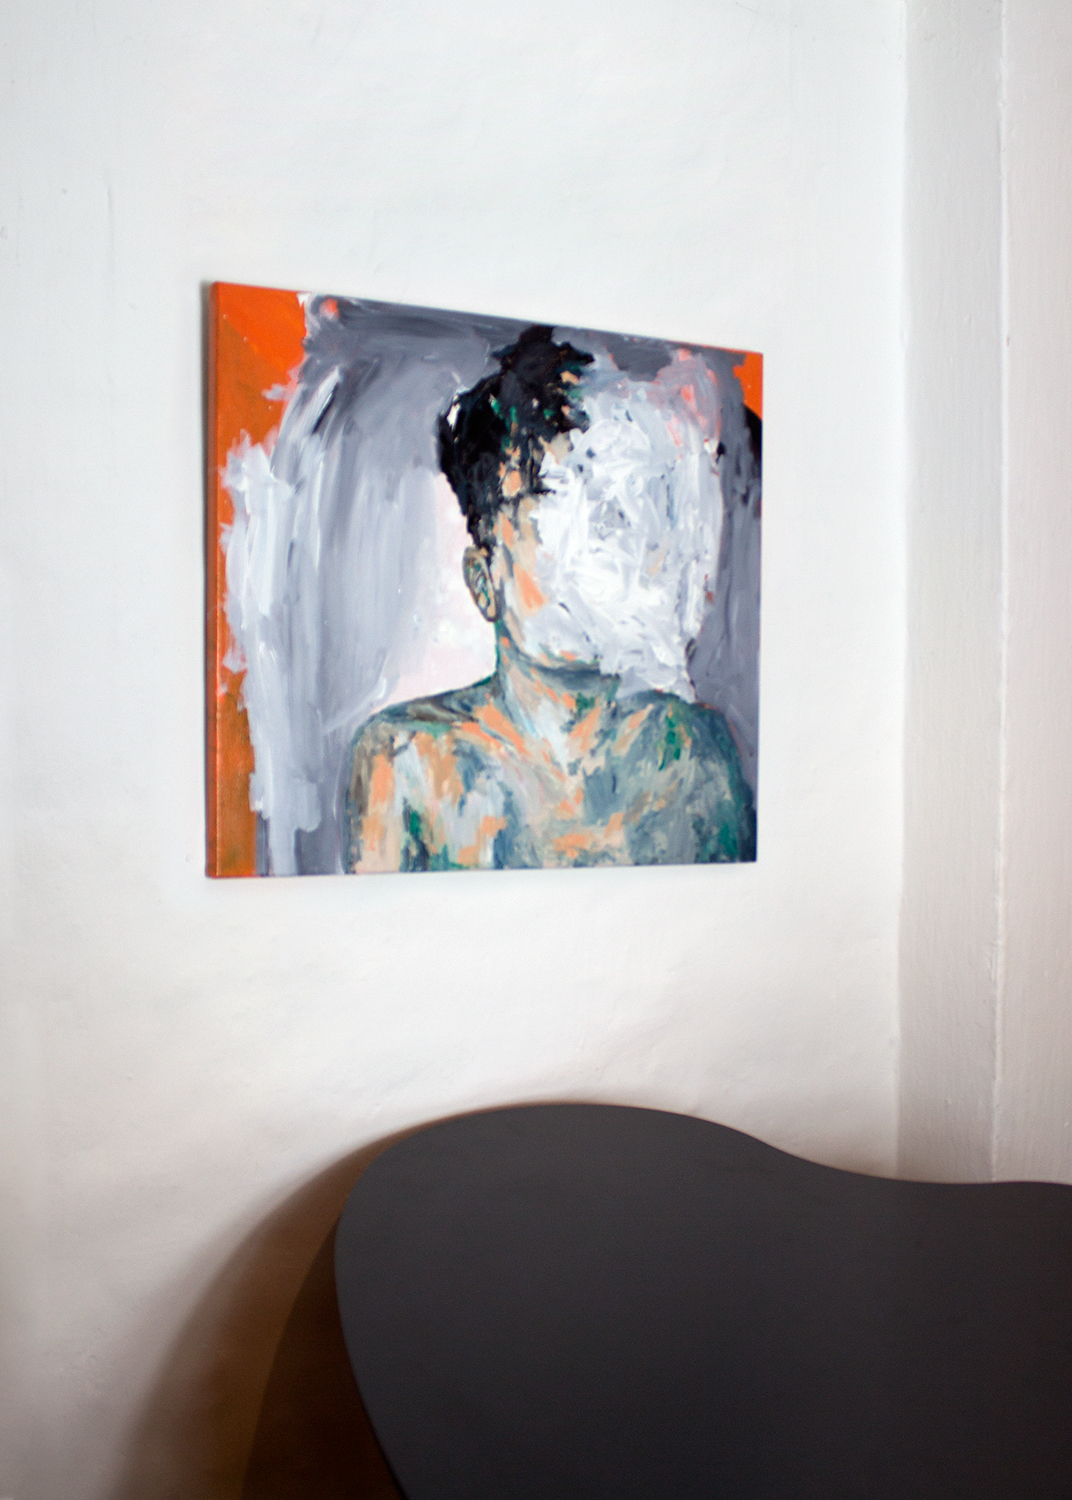 paintings, expressive, figurative, bodies, moods, people, black, green, grey, orange, acrylic, cotton-canvas, boys, bright, contemporary-art, copenhagen, interior, interior-design, men, scandinavien, Buy original high quality art. Paintings, drawings, limited edition prints & posters by talented artists.